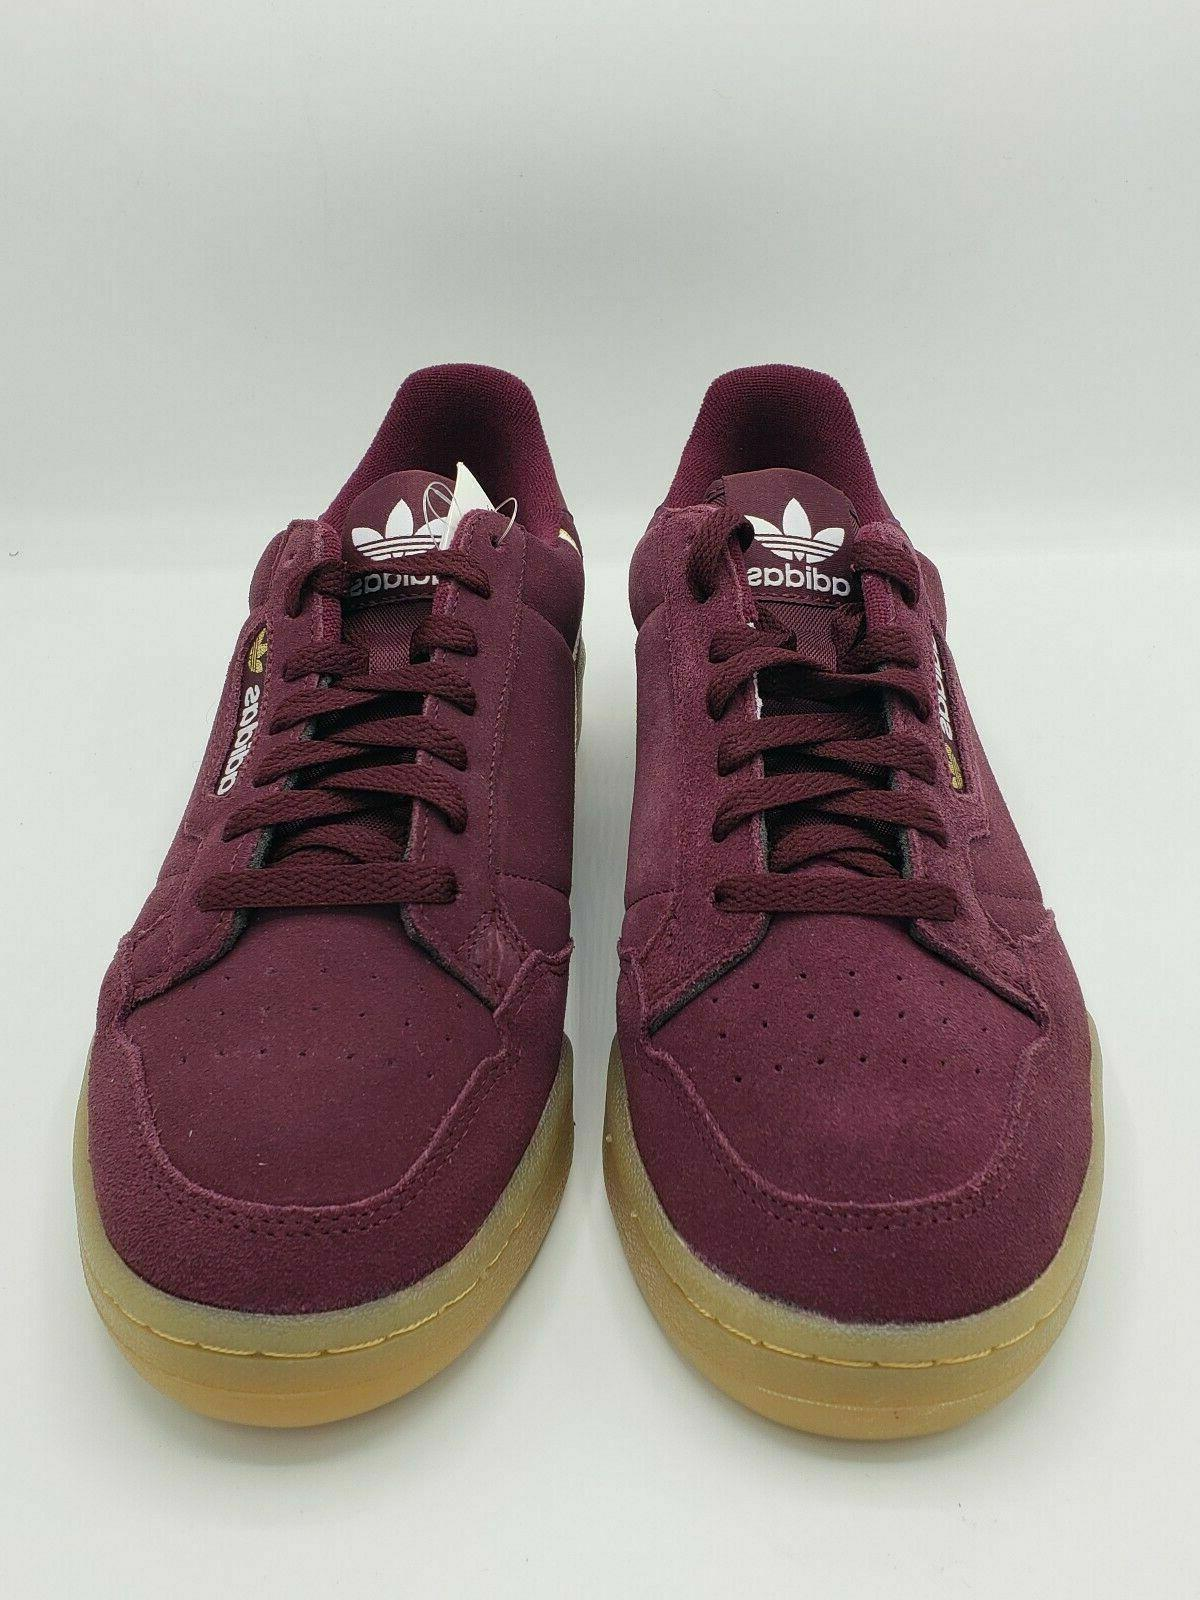 Adidas Continental 80 Fashion Sneakers